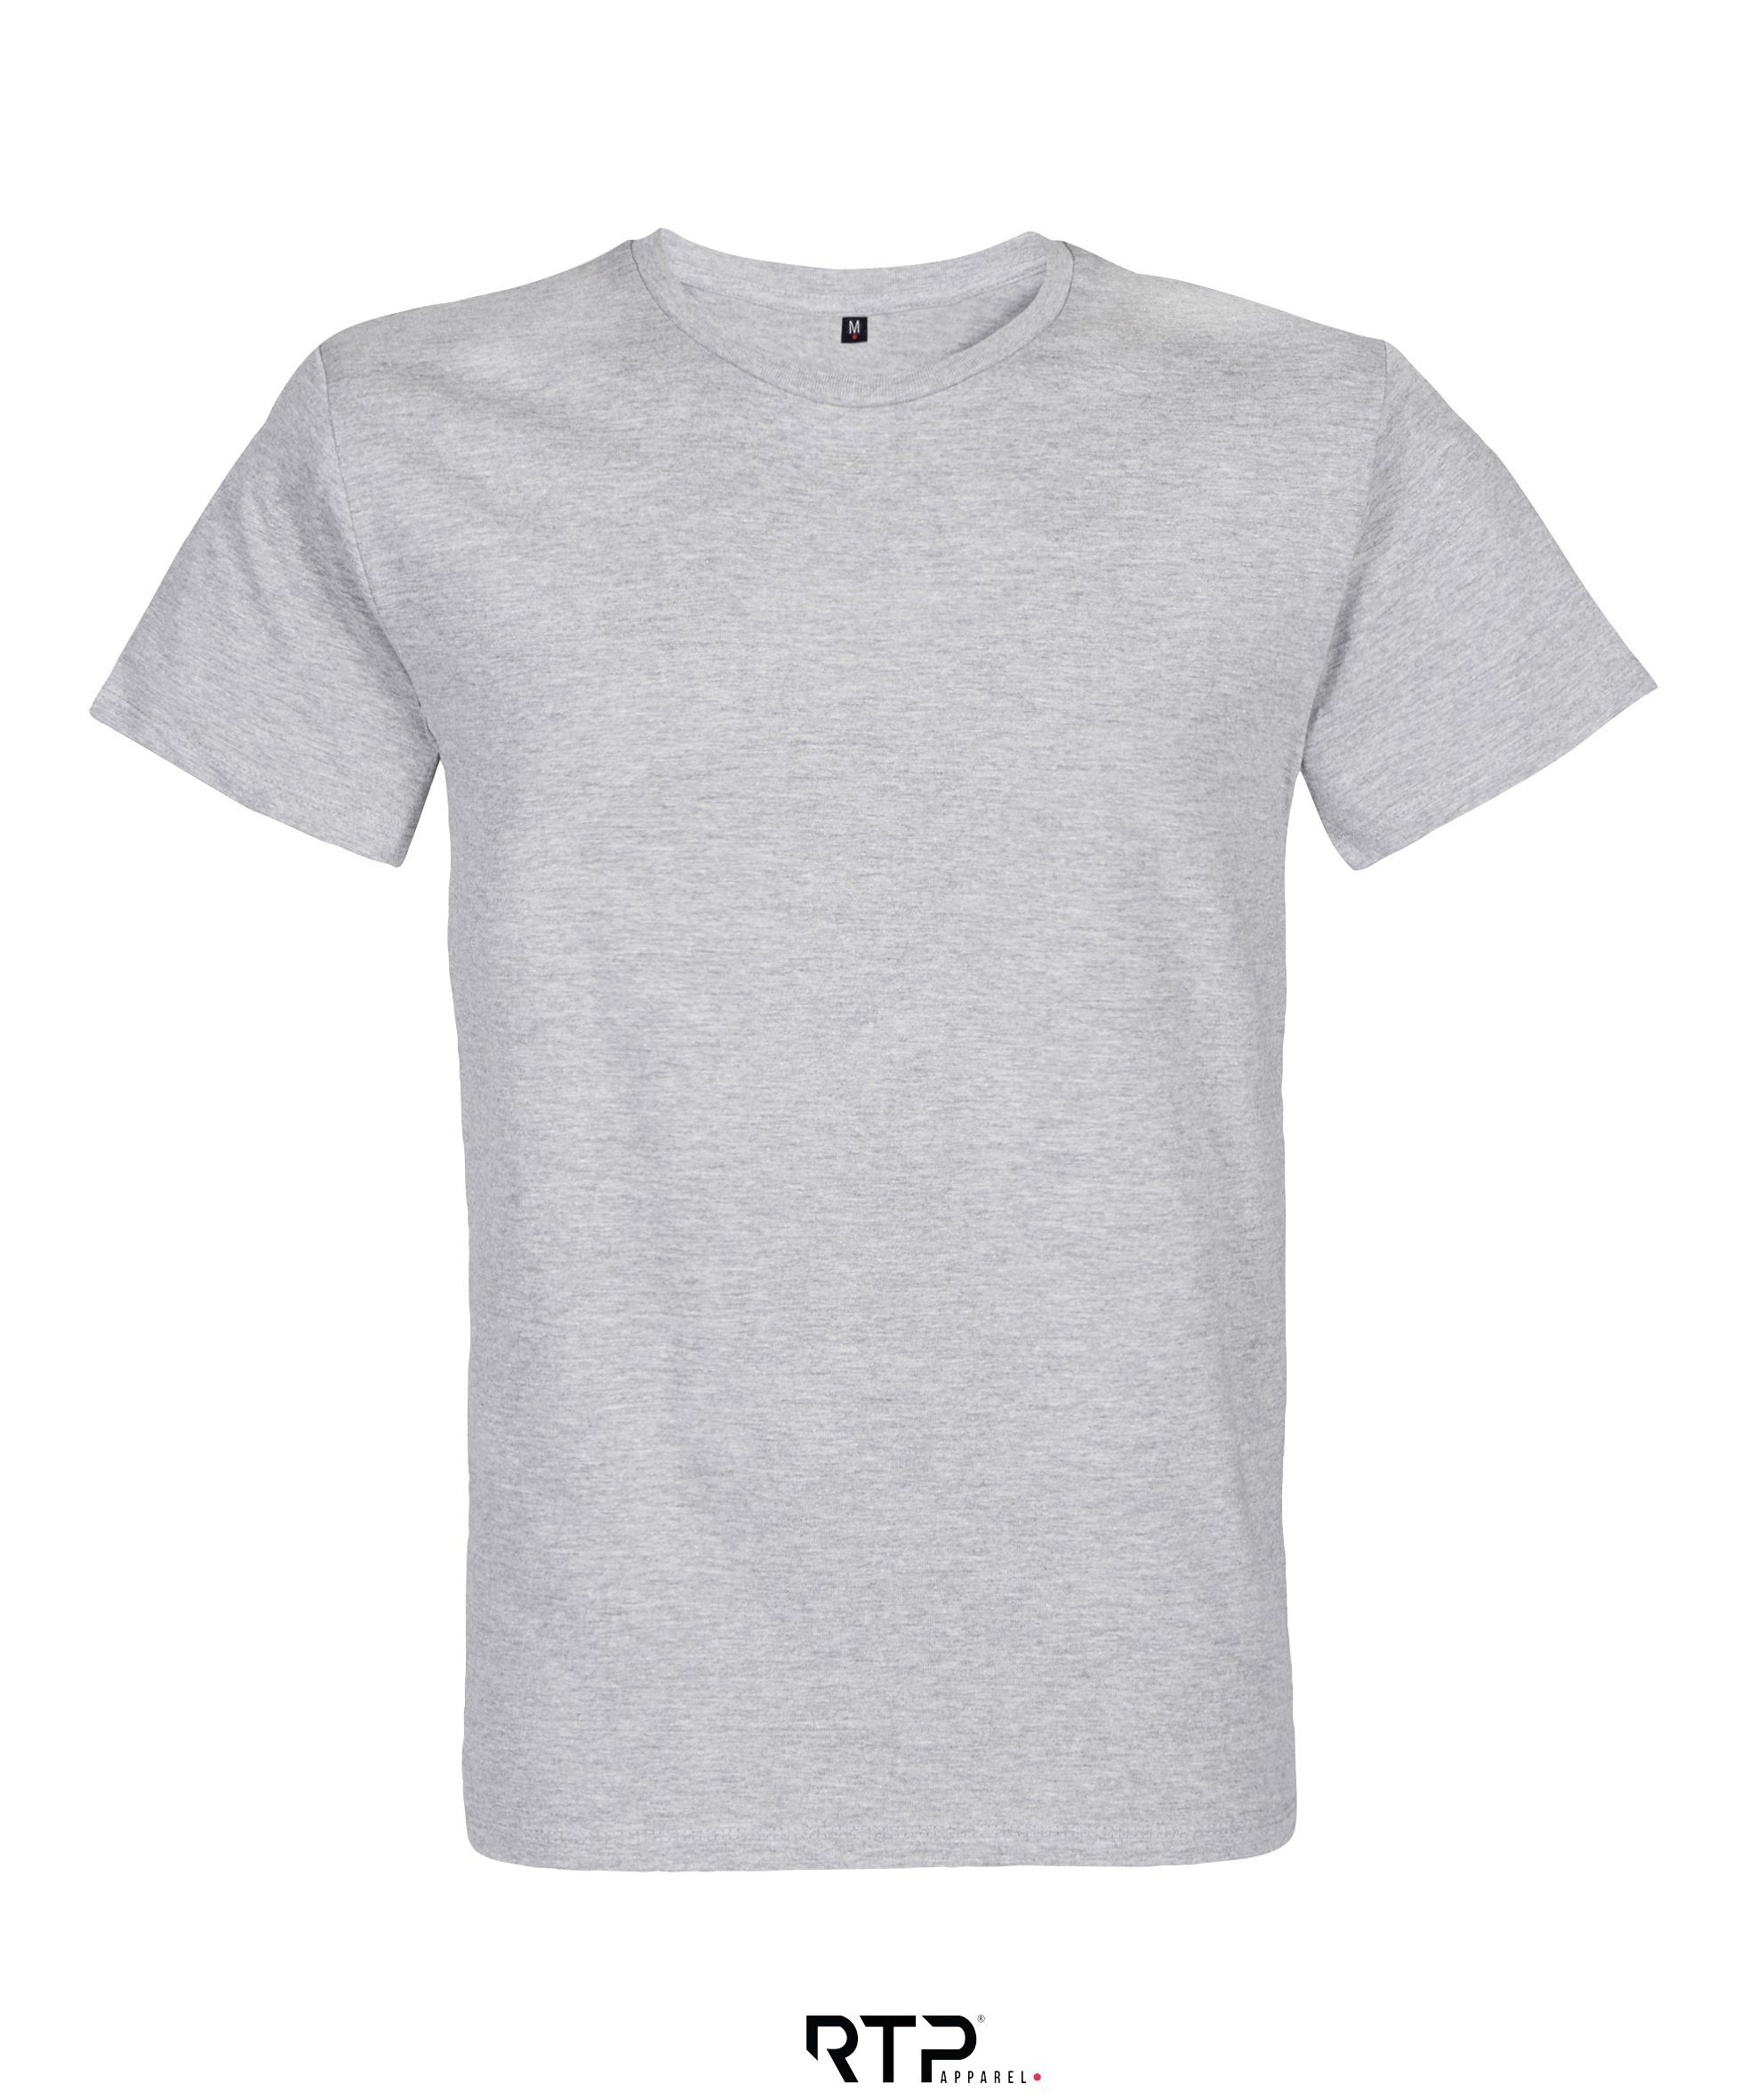 Tee-shirt homme manches courtes - 1-1452-1